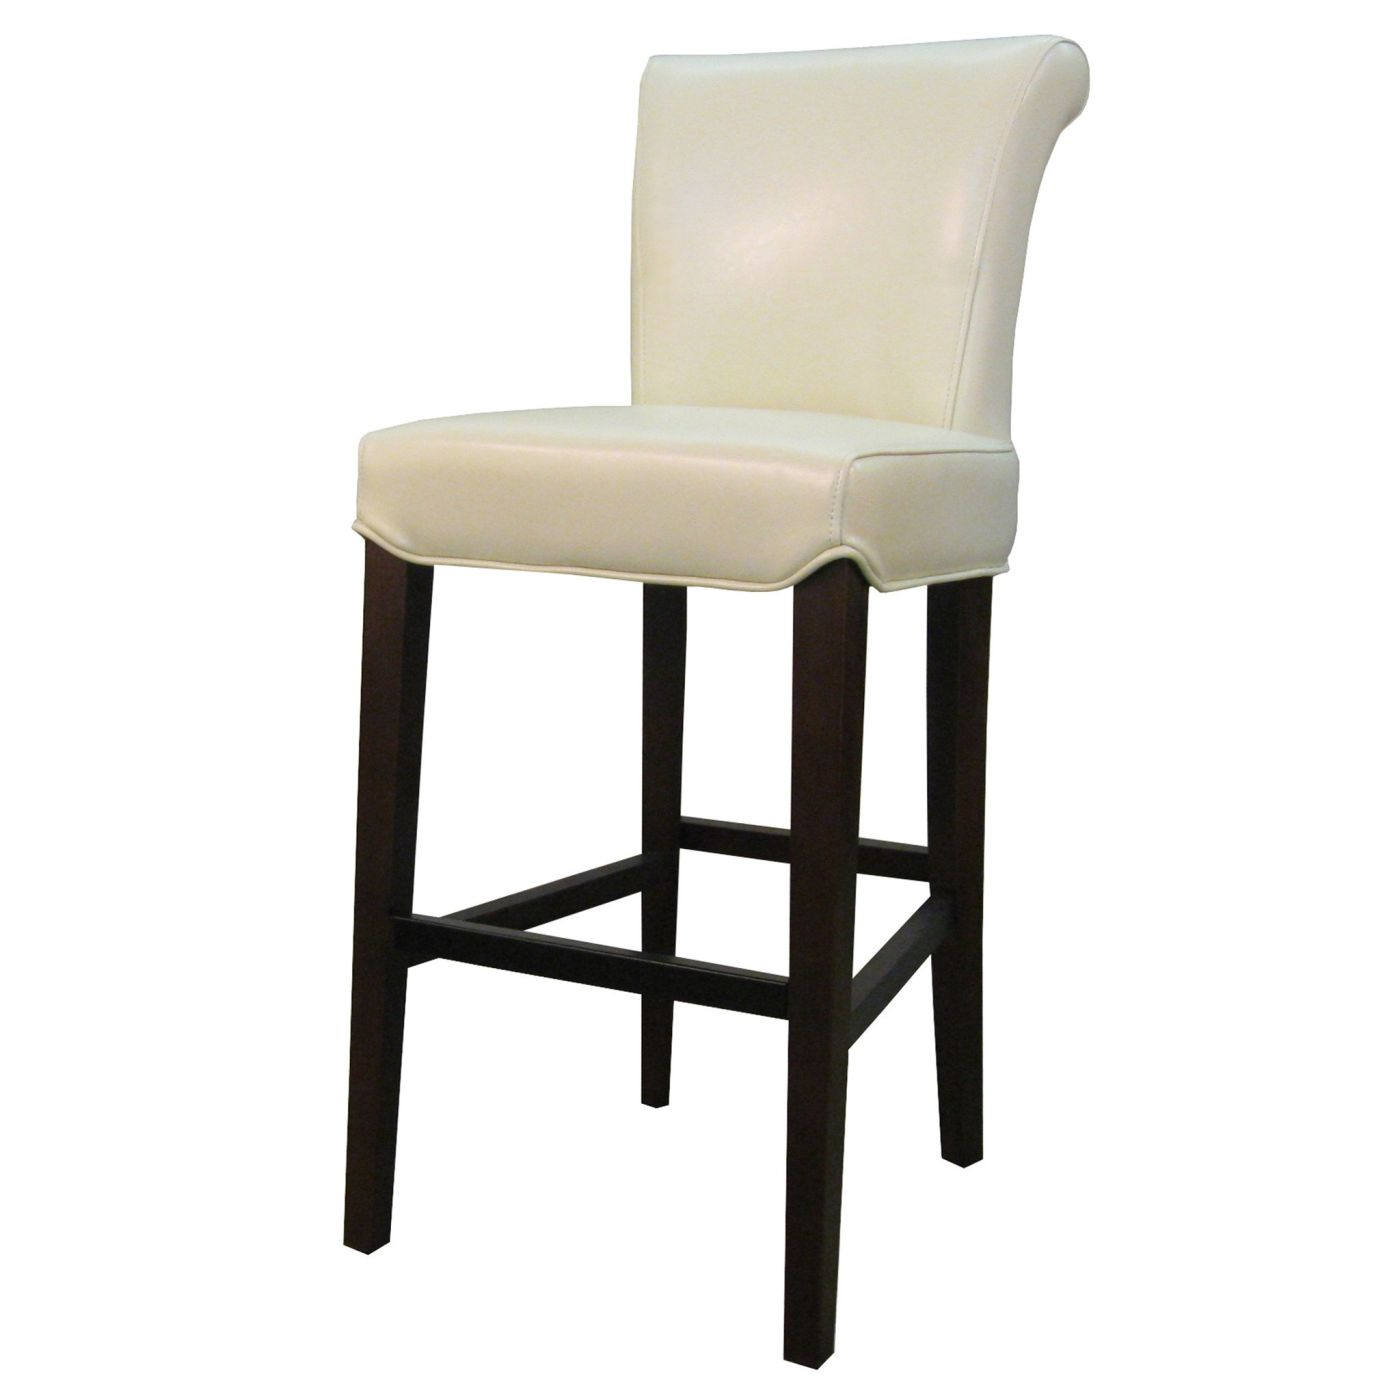 Admirable Buy New Pacific Direct 148524 2050 Bentley Leather Counter Stool Beige At Contemporary Furniture Warehouse Onthecornerstone Fun Painted Chair Ideas Images Onthecornerstoneorg